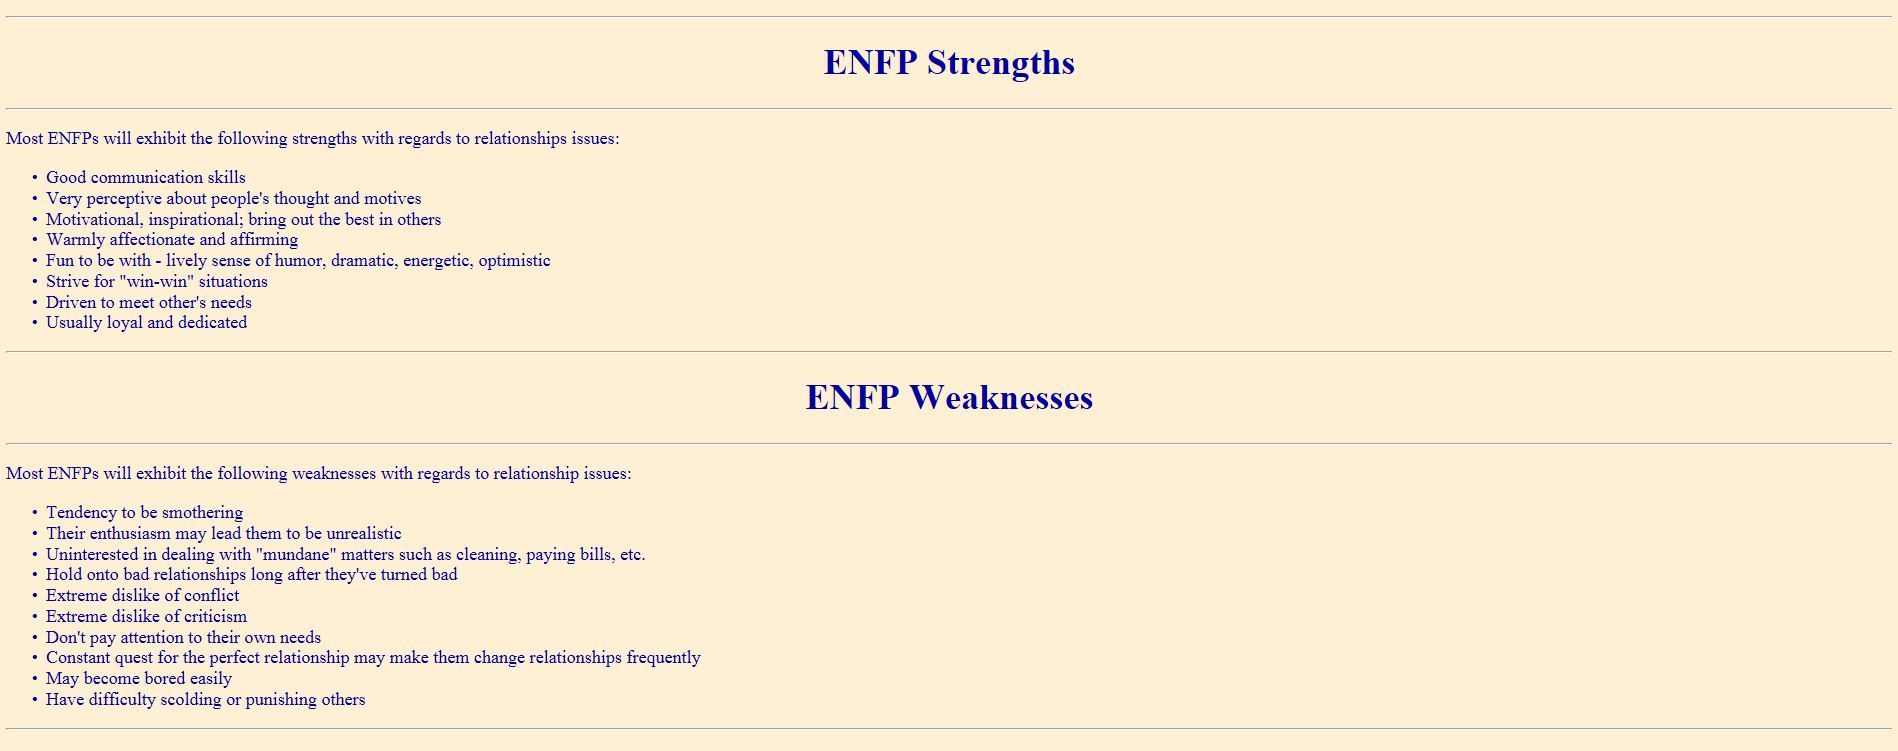 enfp strengths and weaknesses in relationships enfp strengths and weaknesses in relationships personalitypage com